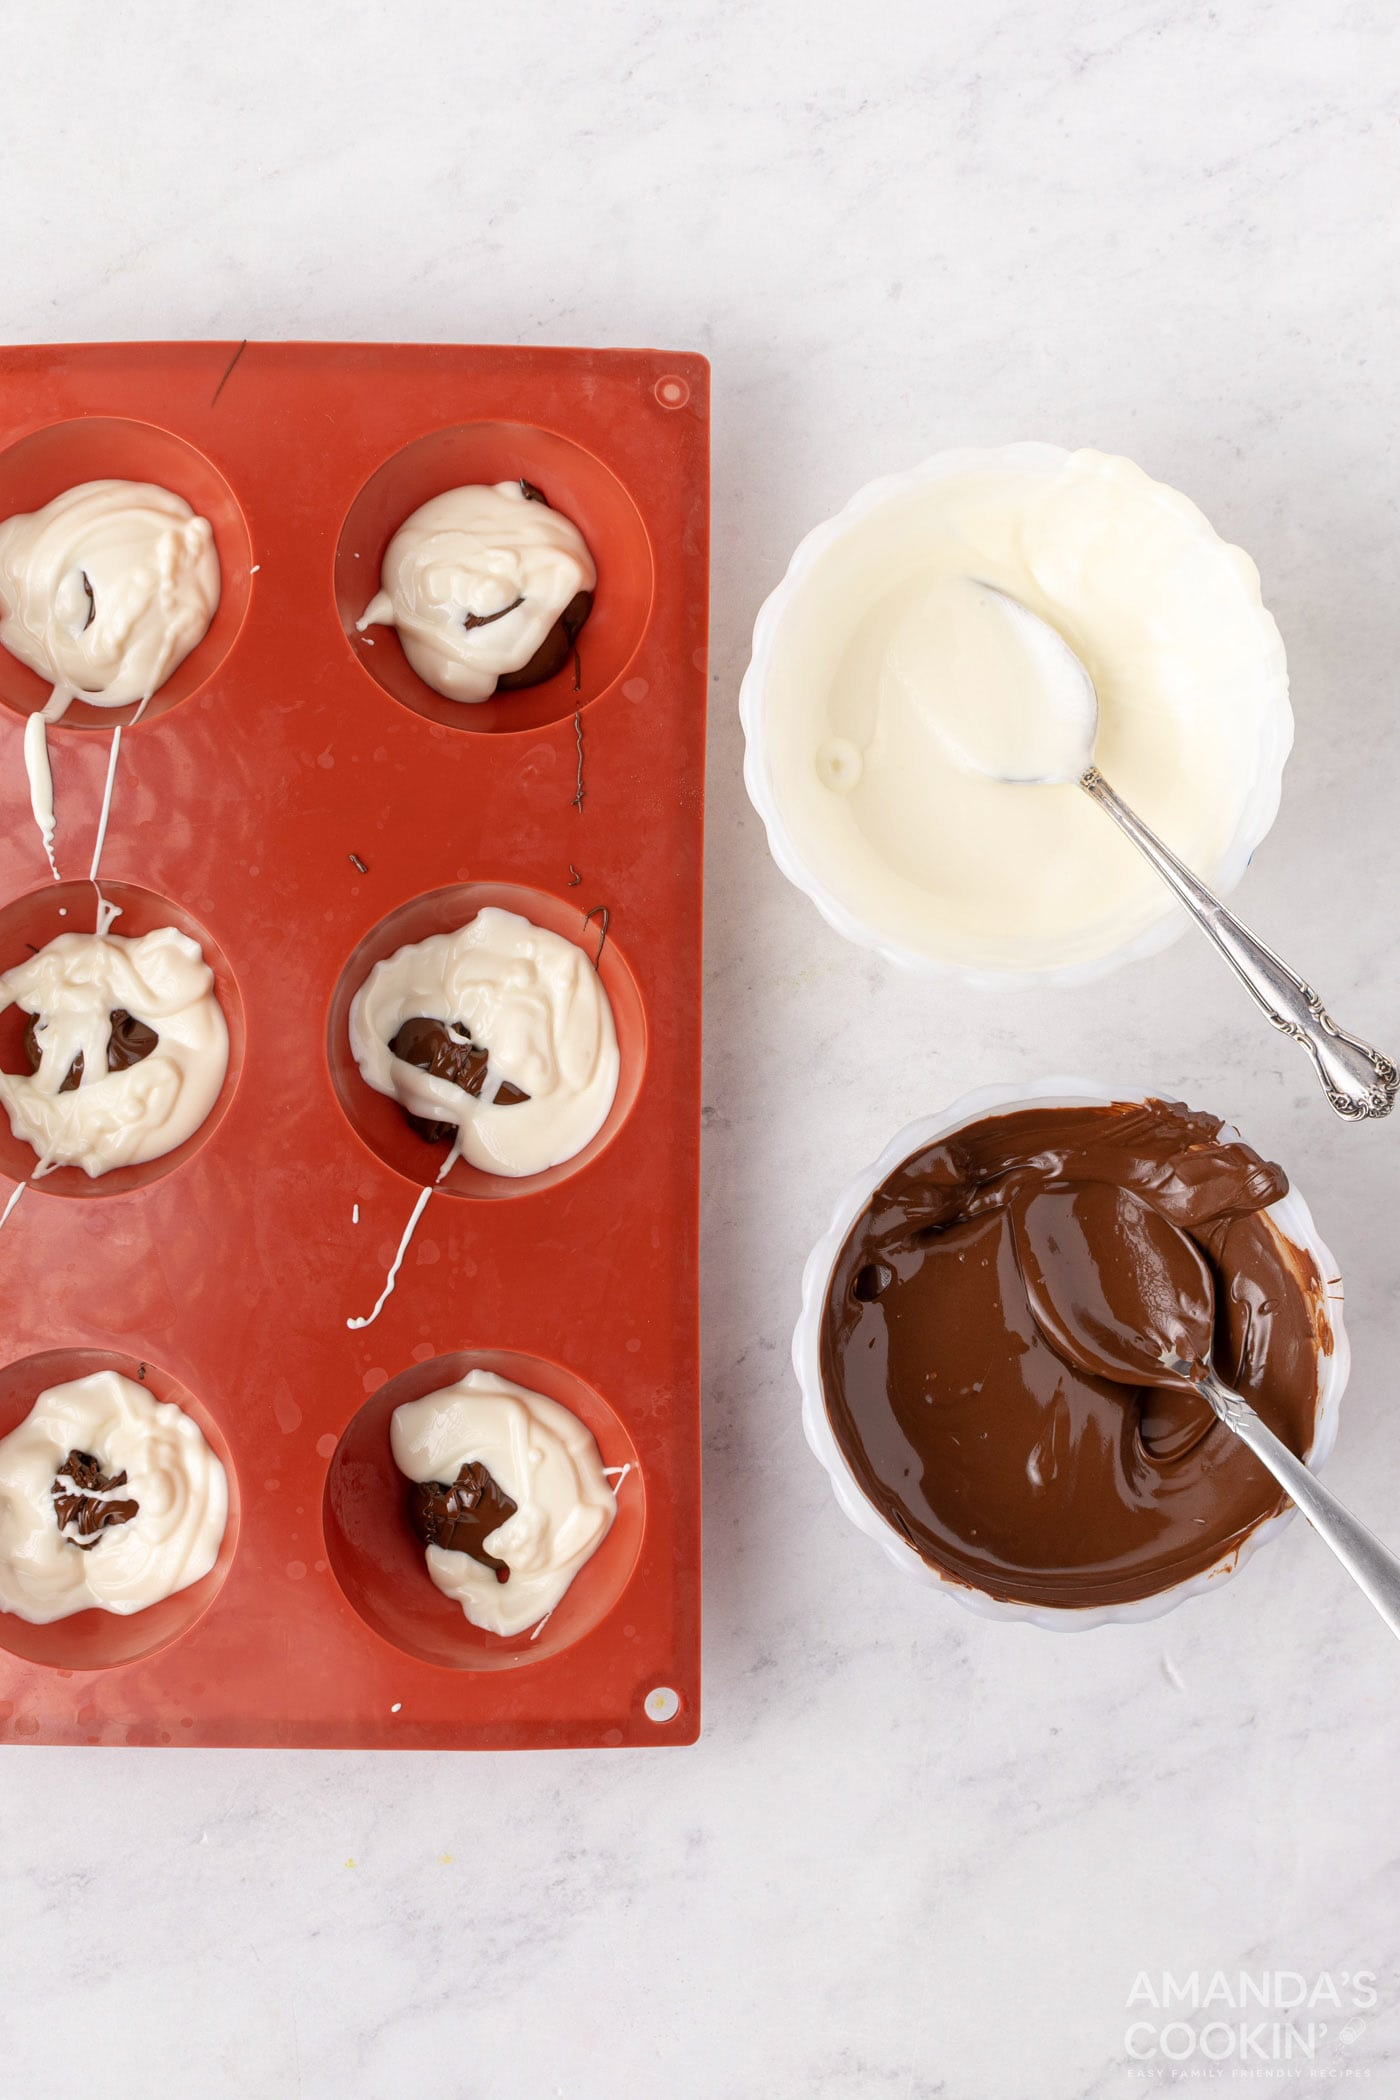 adding chocolate to cocoa bomb molds